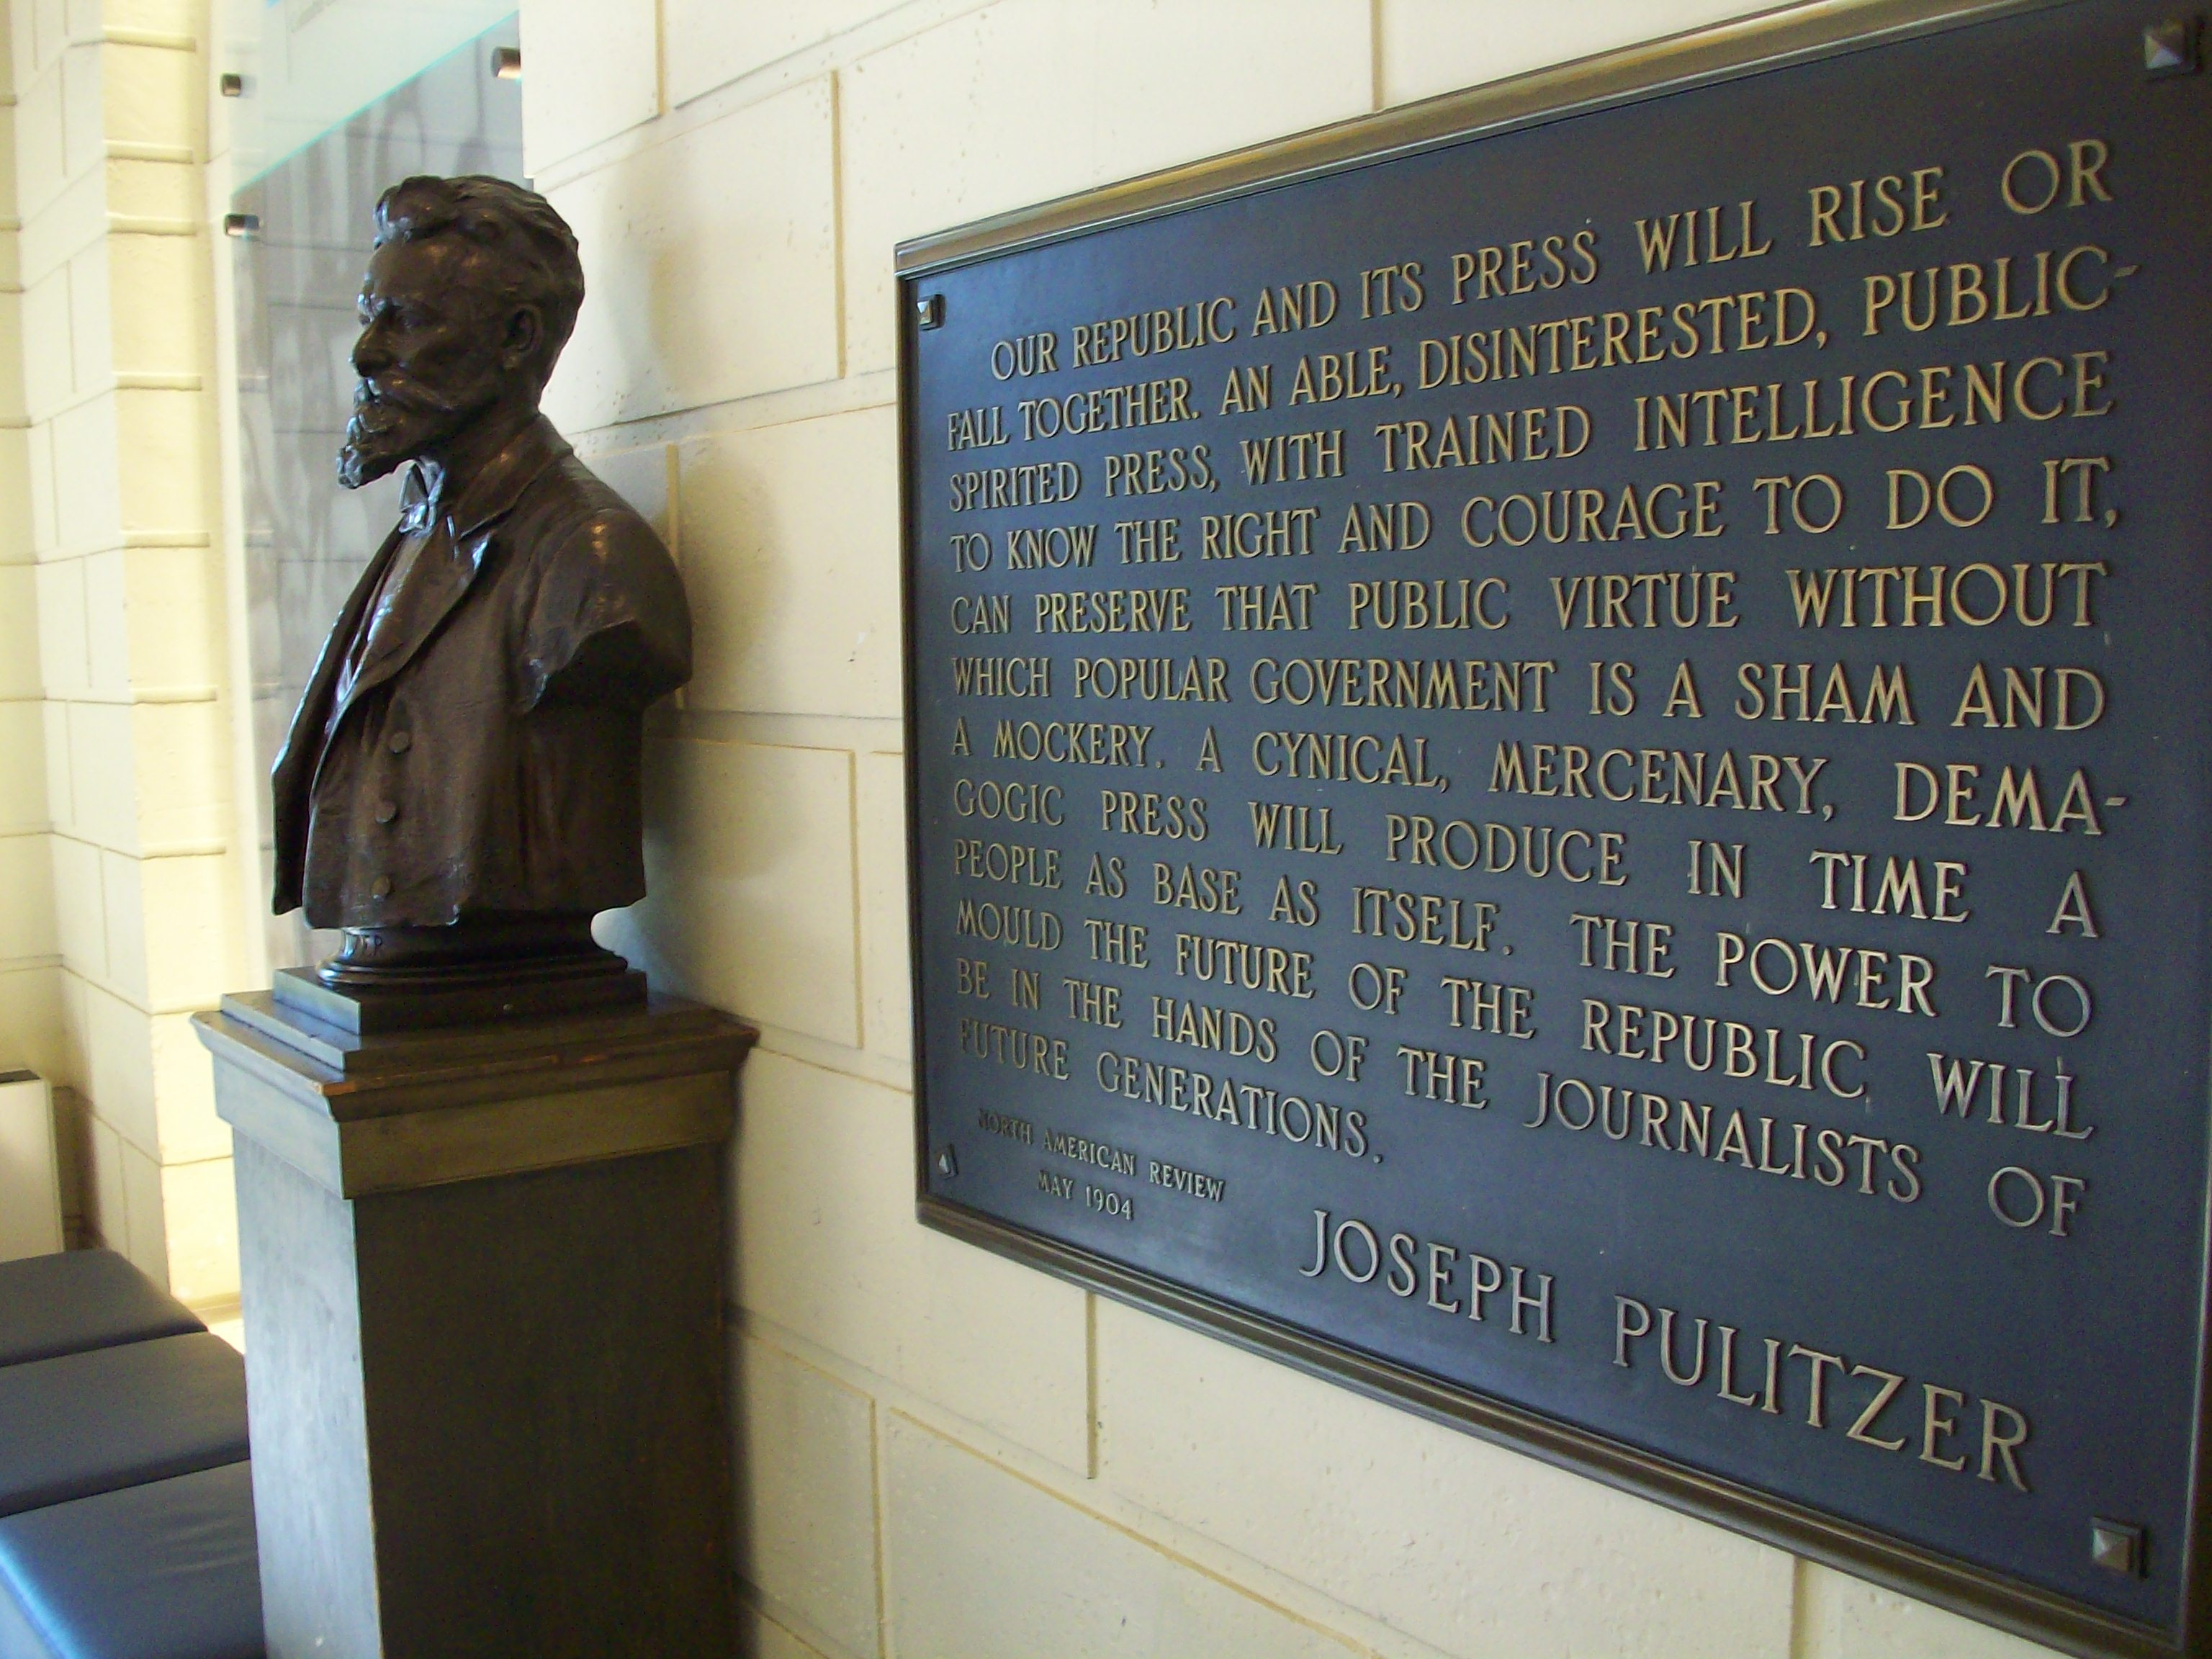 Joseph Pulitzer's bust stands next to a plaque bearing his words in the lobby of Pulitzer Hall, which houses the Columbia University Graduation School of Journalism. (Picture via Matt Drange)